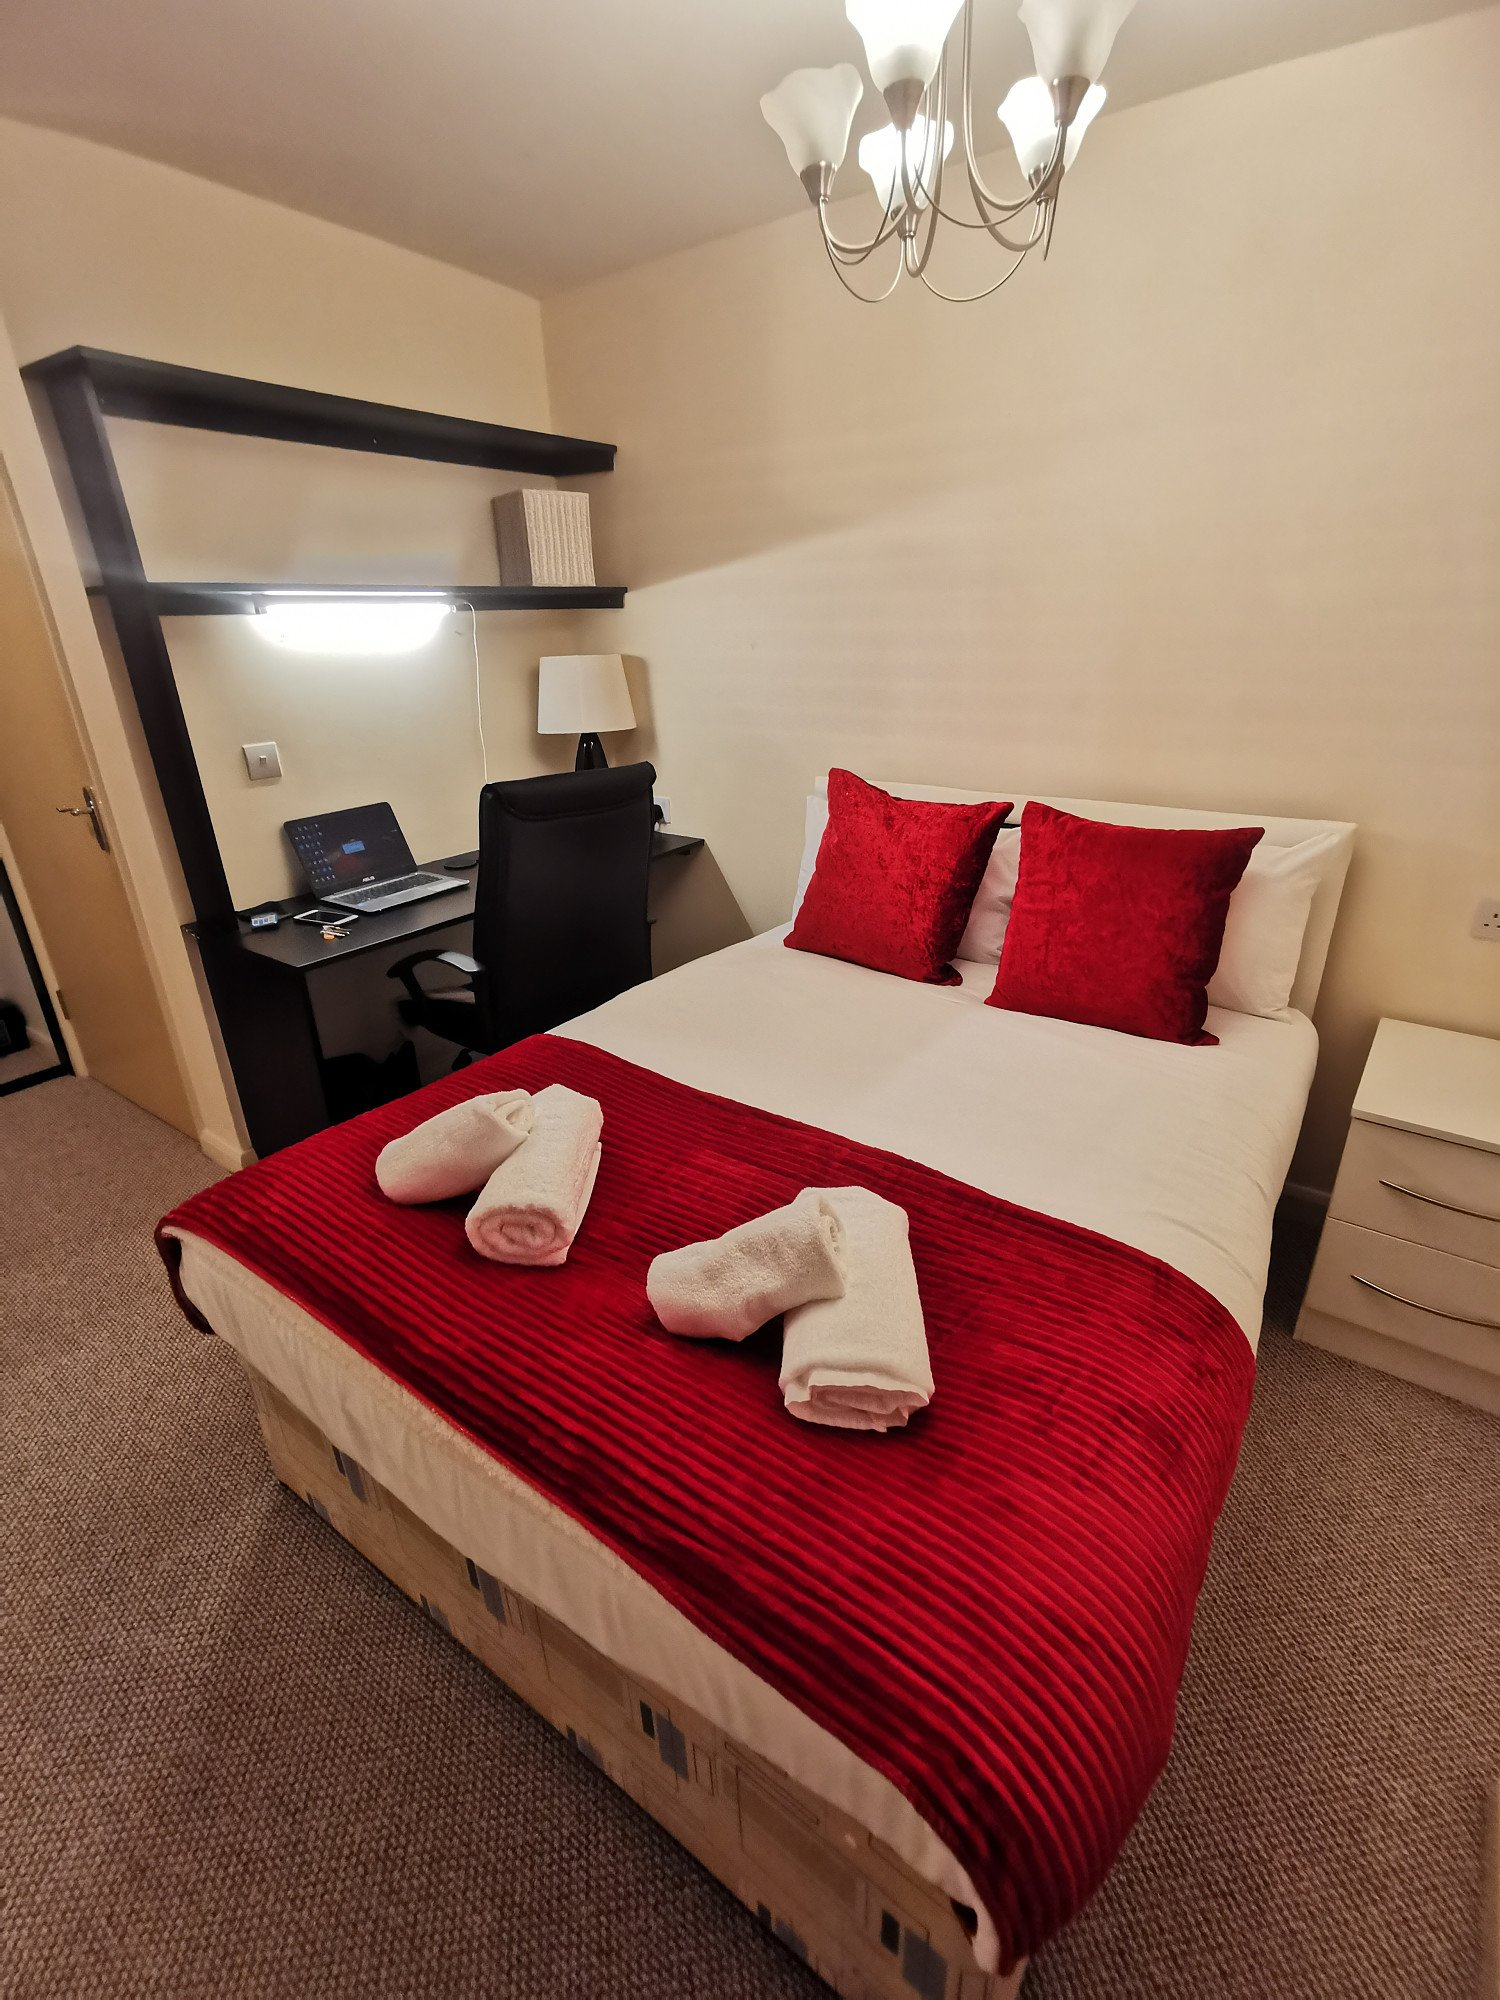 Win a week in Birmingham serviced apartments (in January 2022 sleeps up to 6)